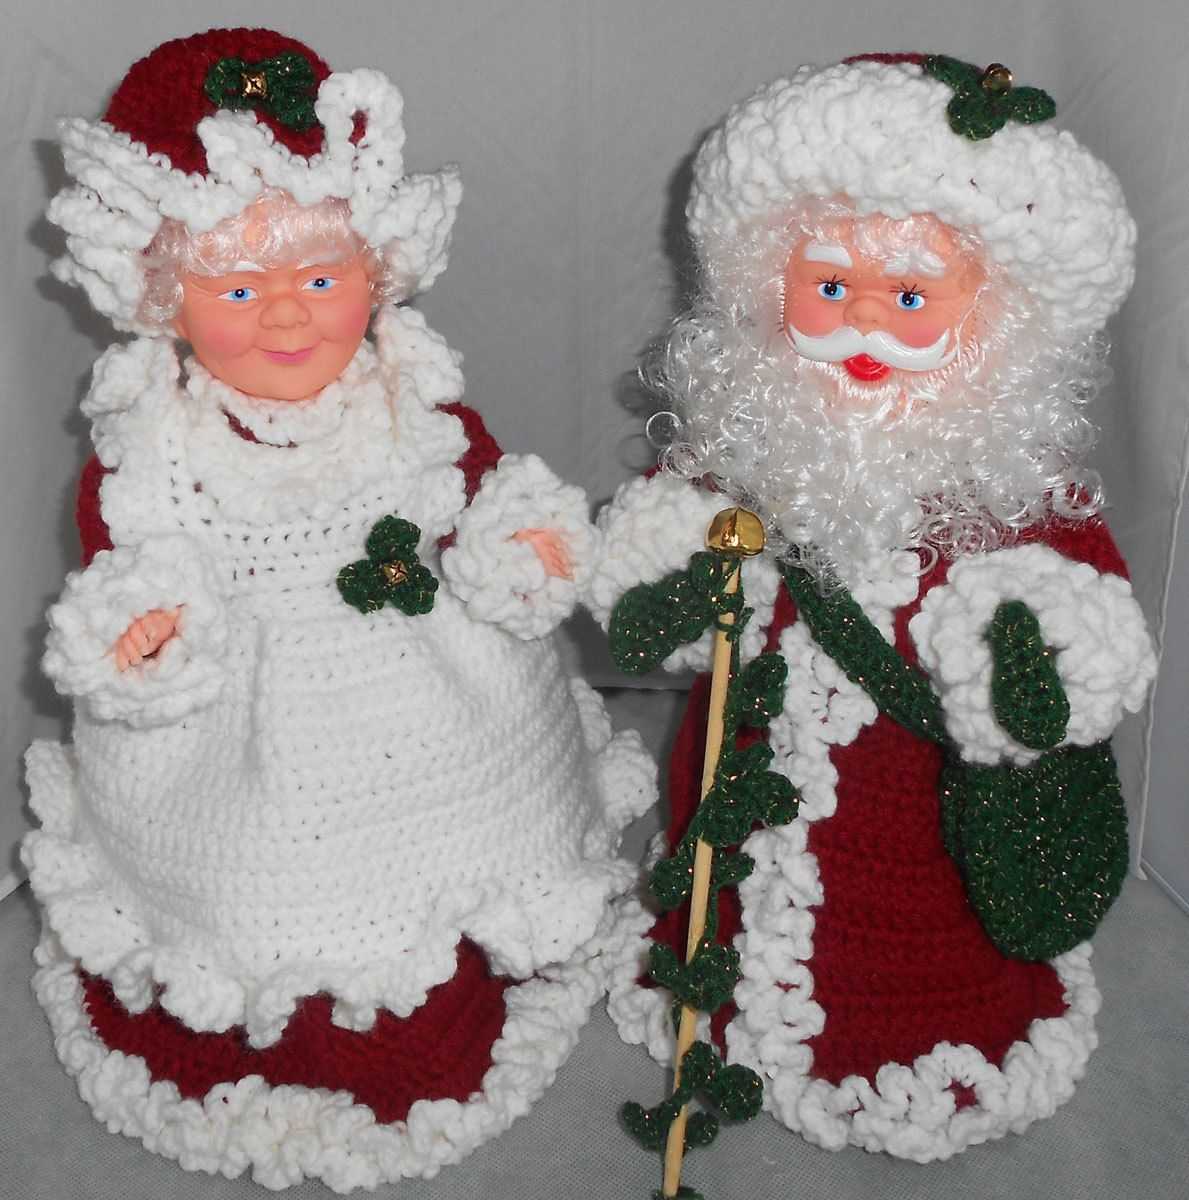 Mrs Claus Christmas Decorations Part - 29: Old World Santa Claus Dolls With Burgundy Crocheted Outfits - Mrs And Mrs  Claus Christmas Decorations